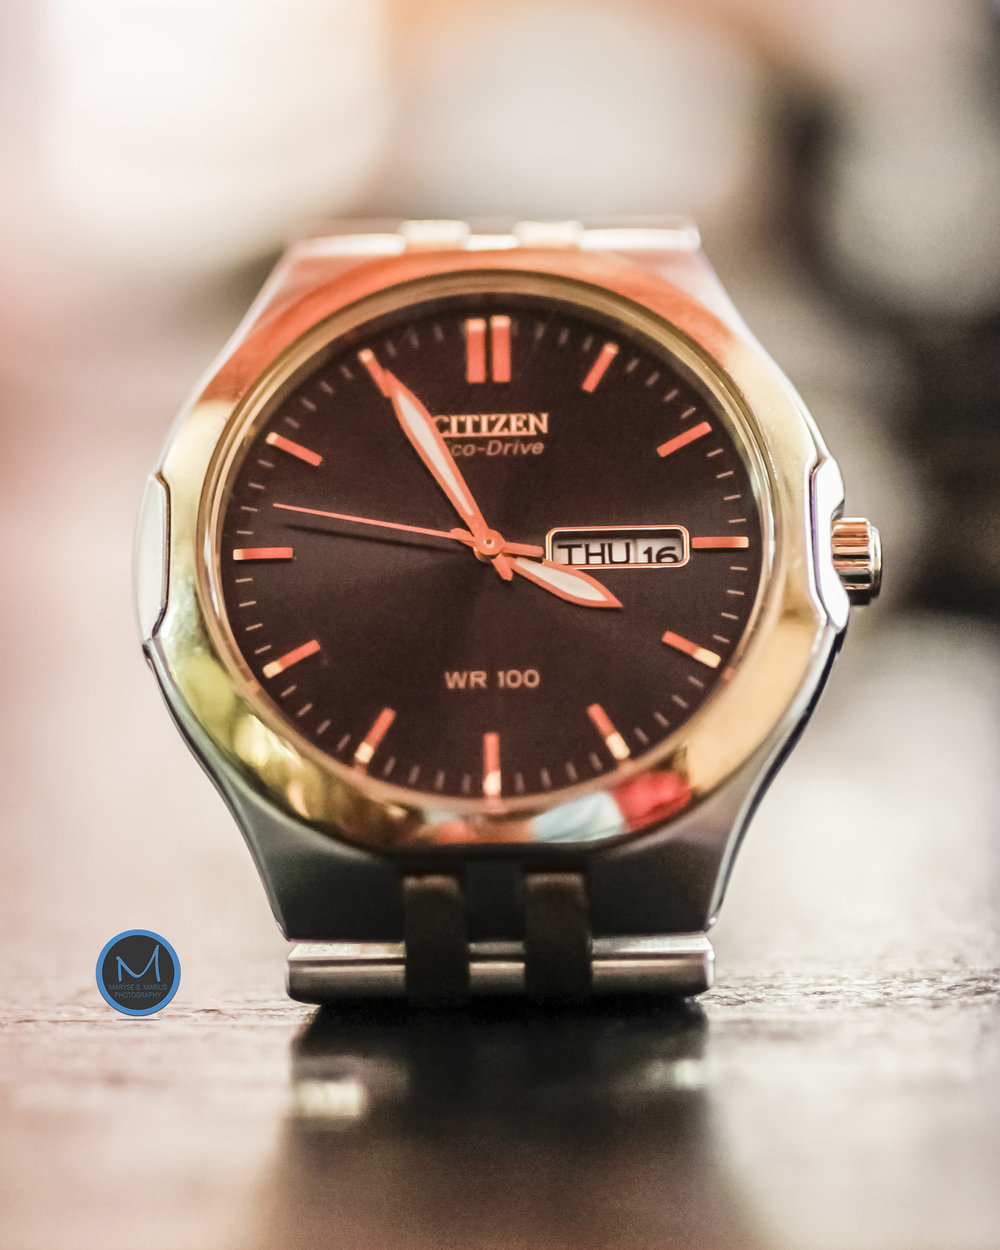 Citizen Watch - Maryse S. Marius Photography